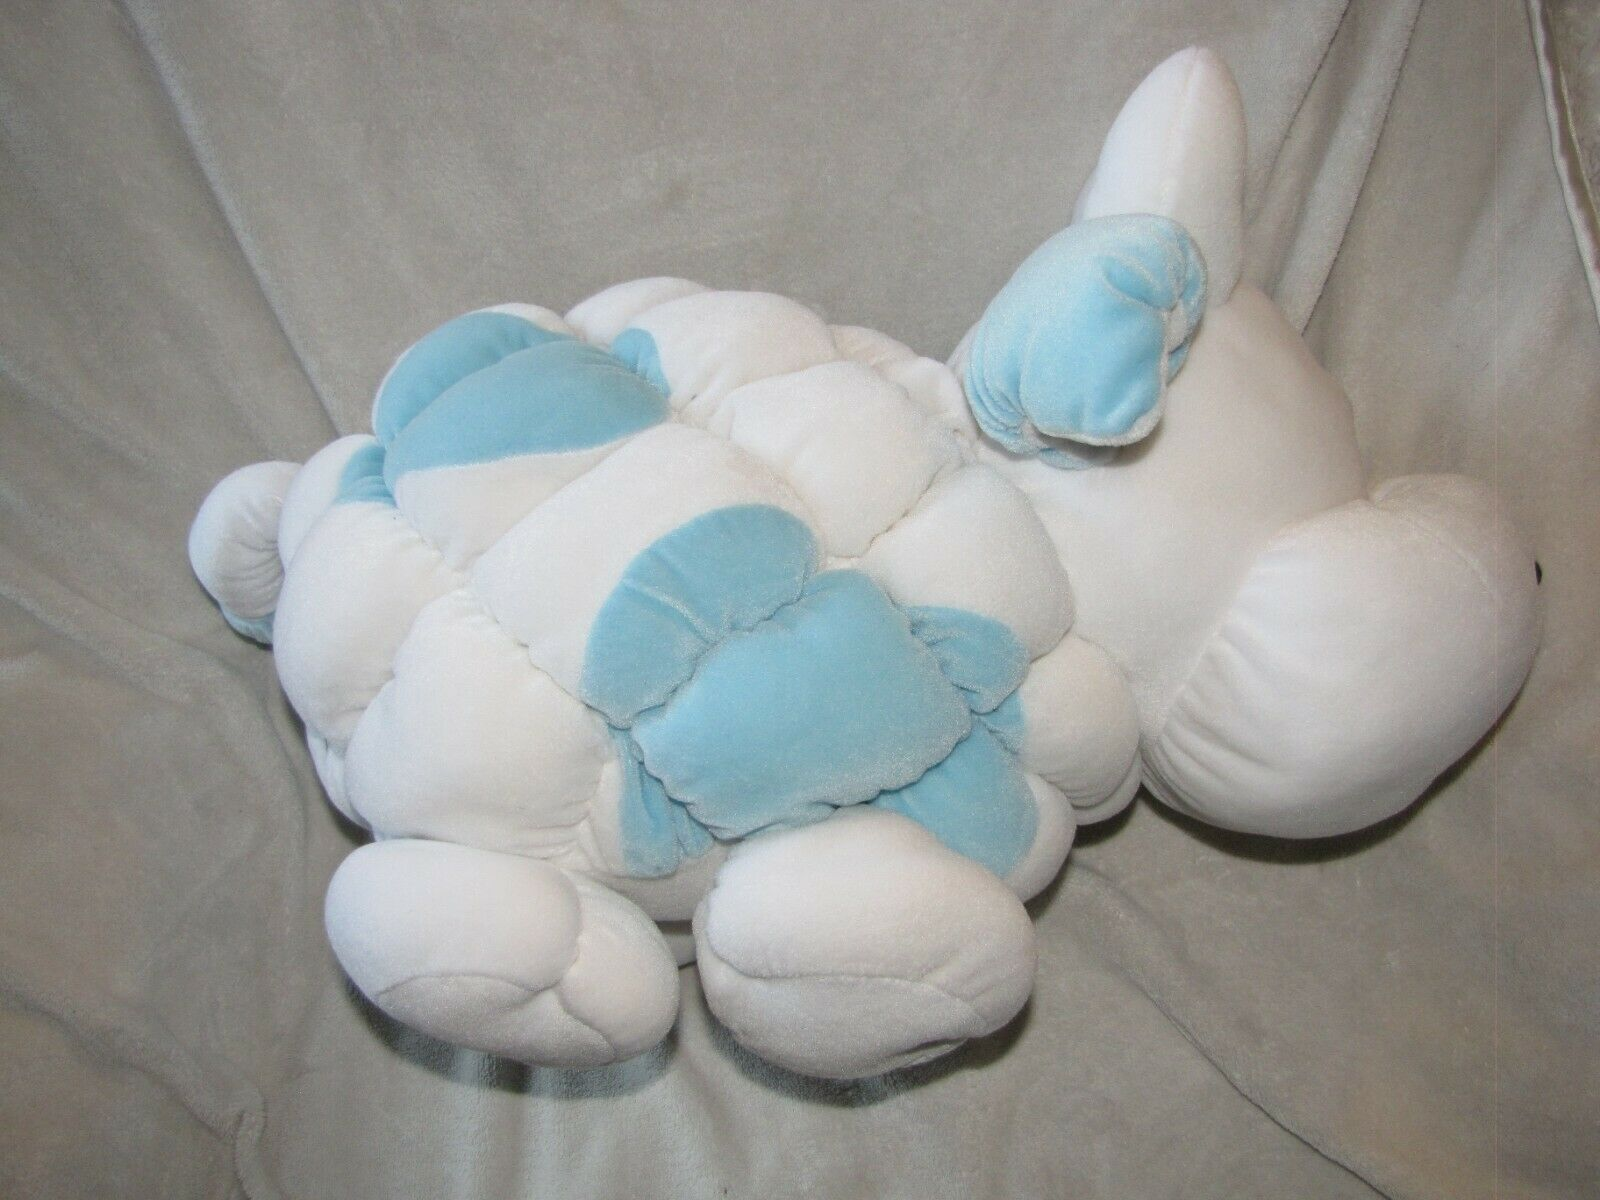 Commonwealth Puff Puffy Stuffed Plush Velour Quilted White Blue Cow Bull Big